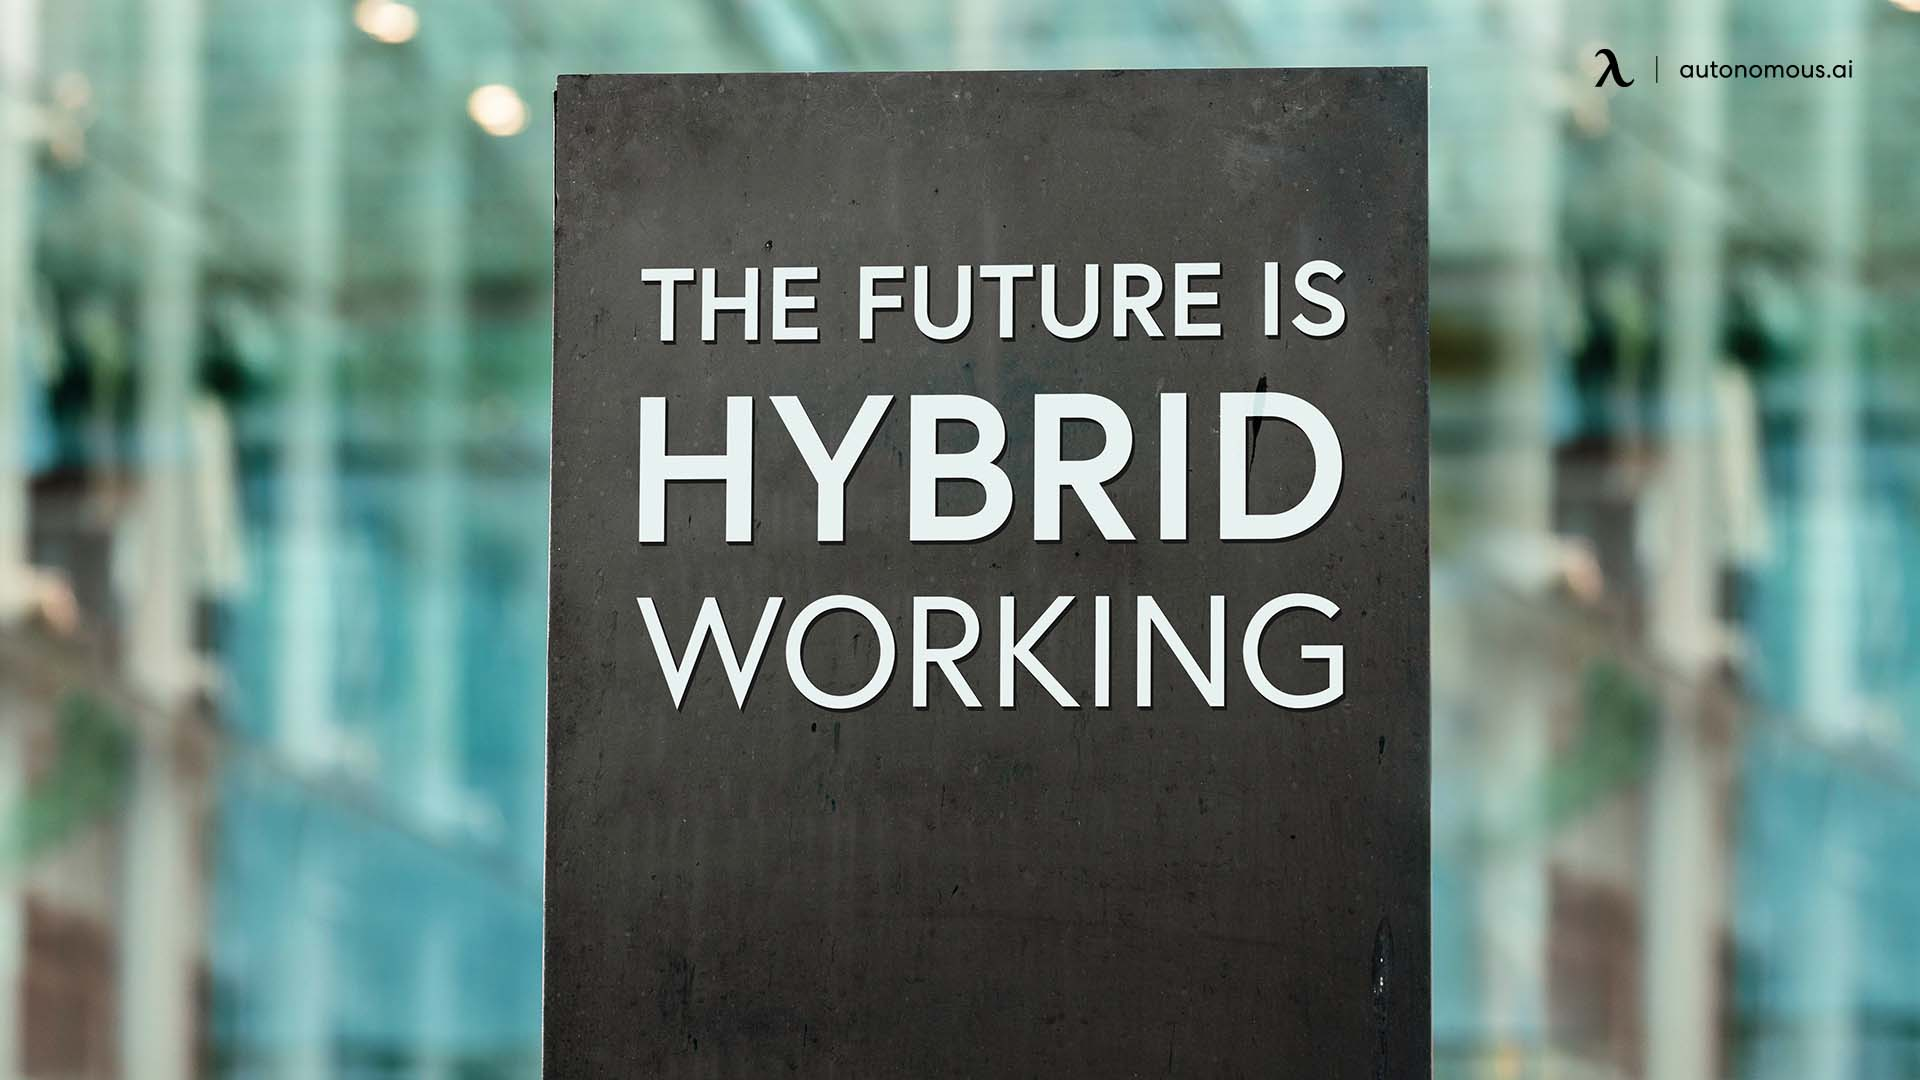 The Future Could Be Hybrid